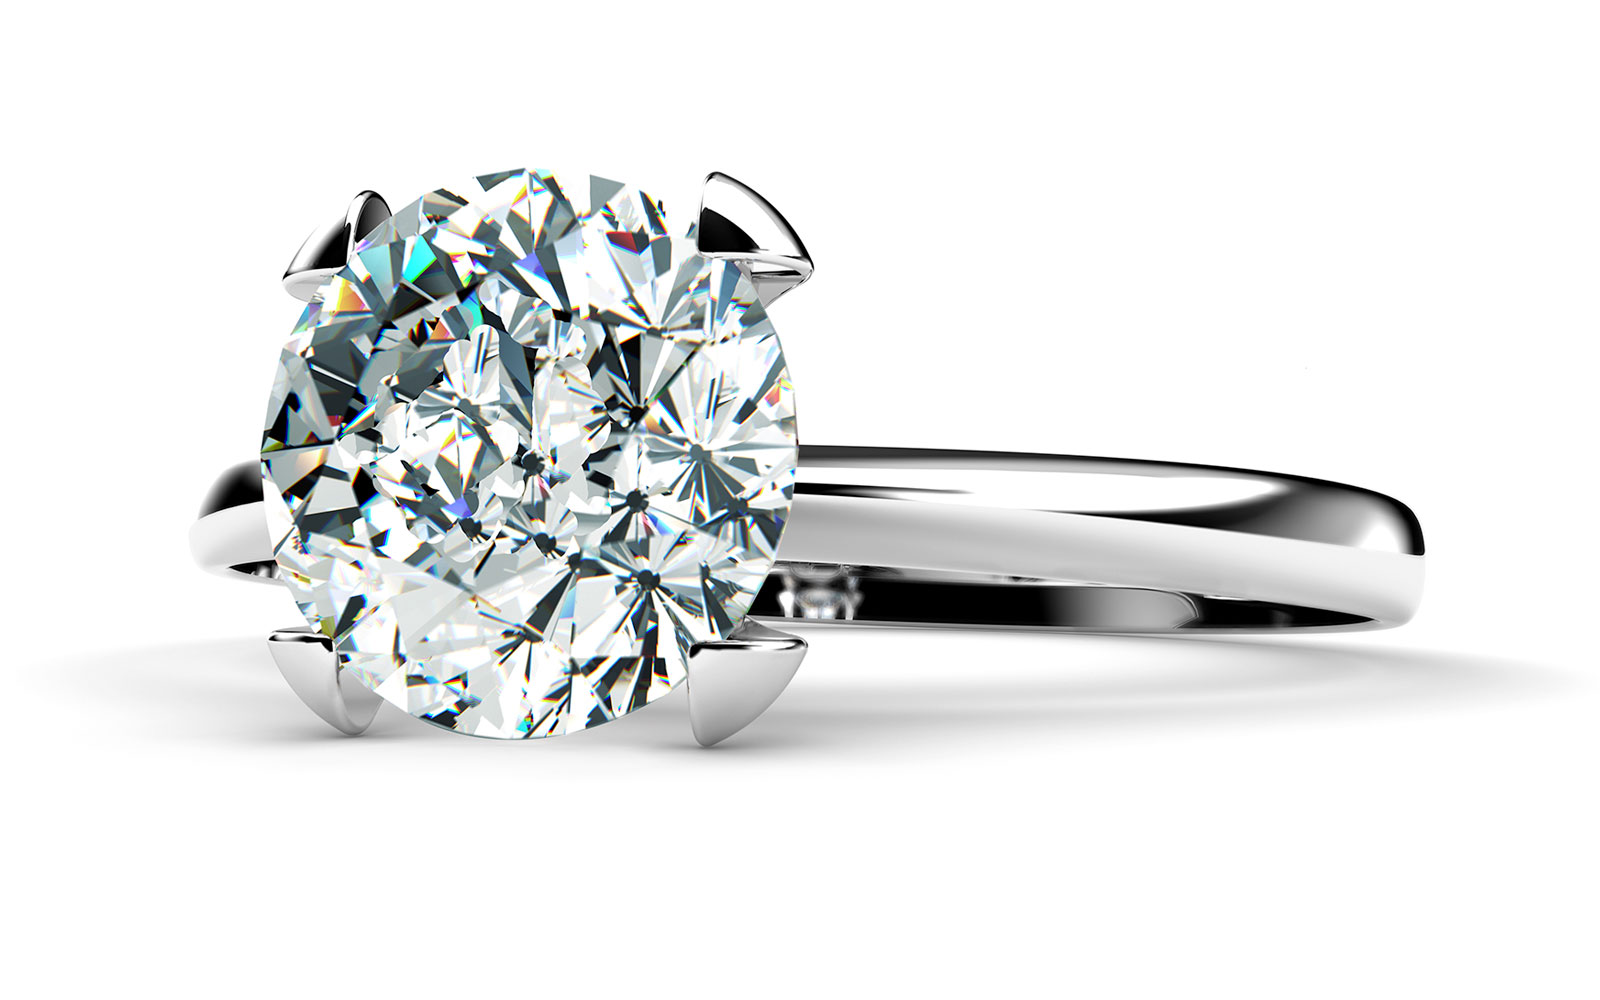 boston diamond buyers boston gold buyers and jewelry